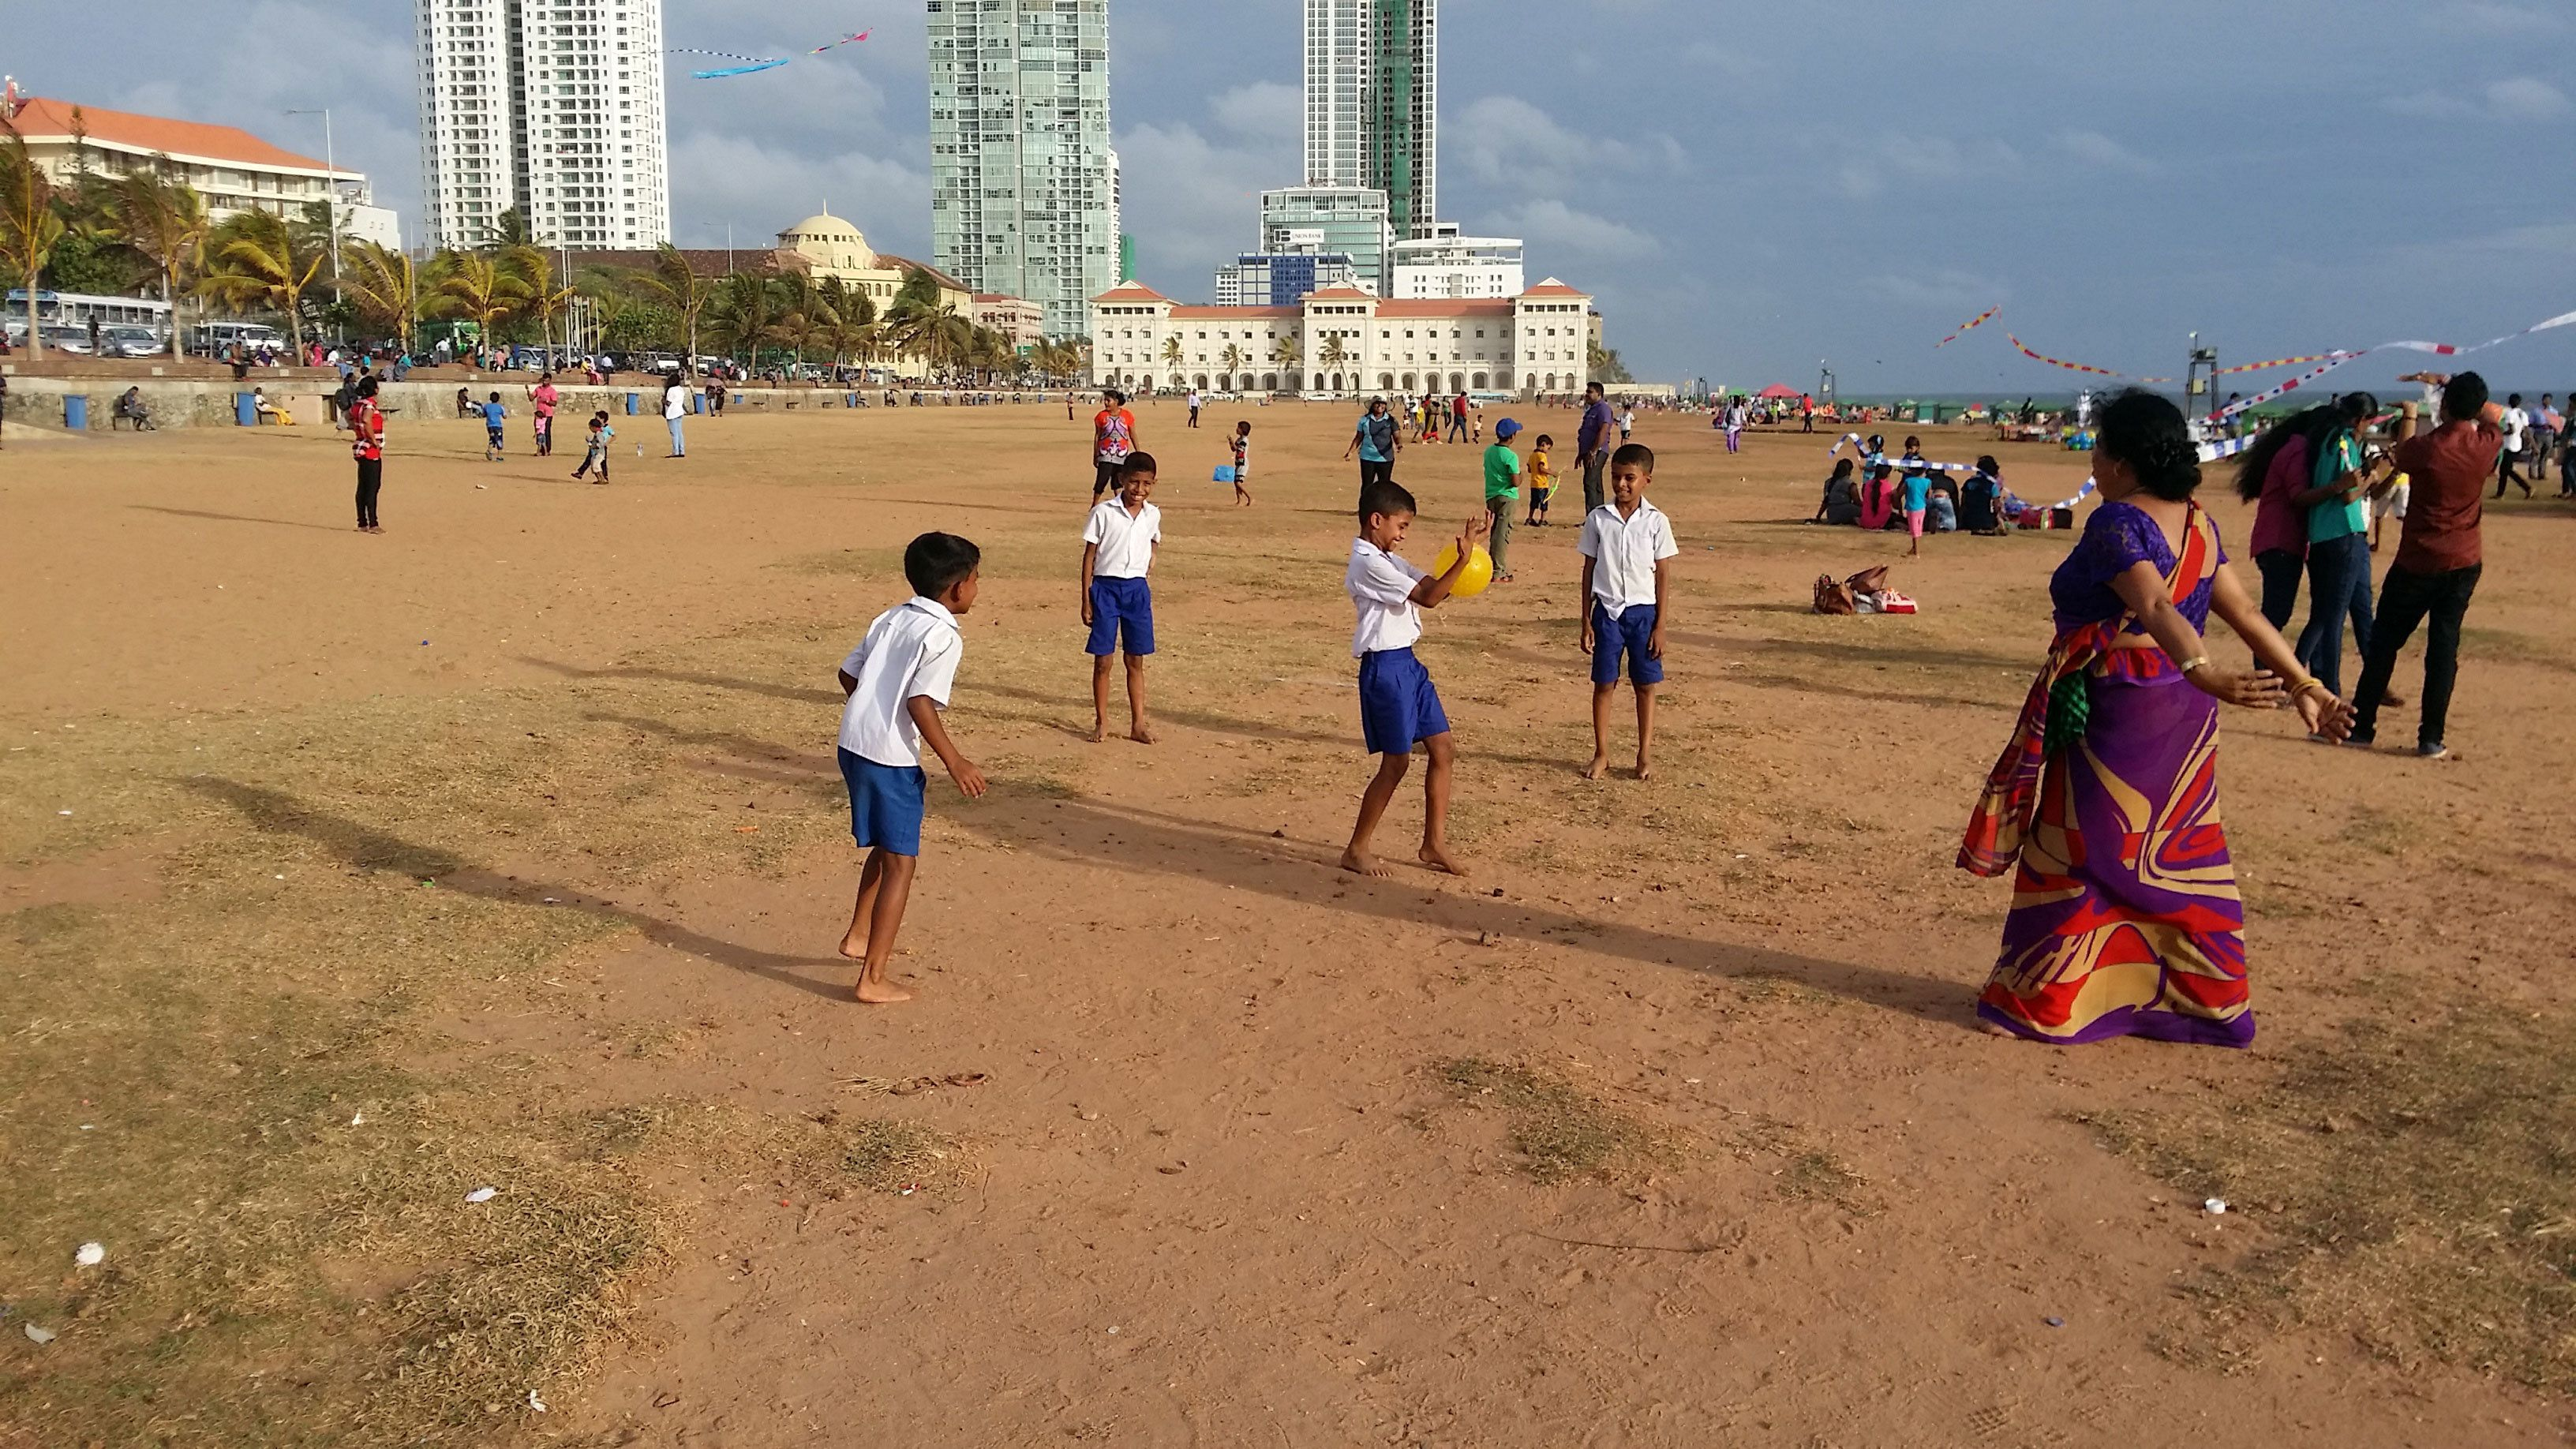 People on the beach near the city in Colombo